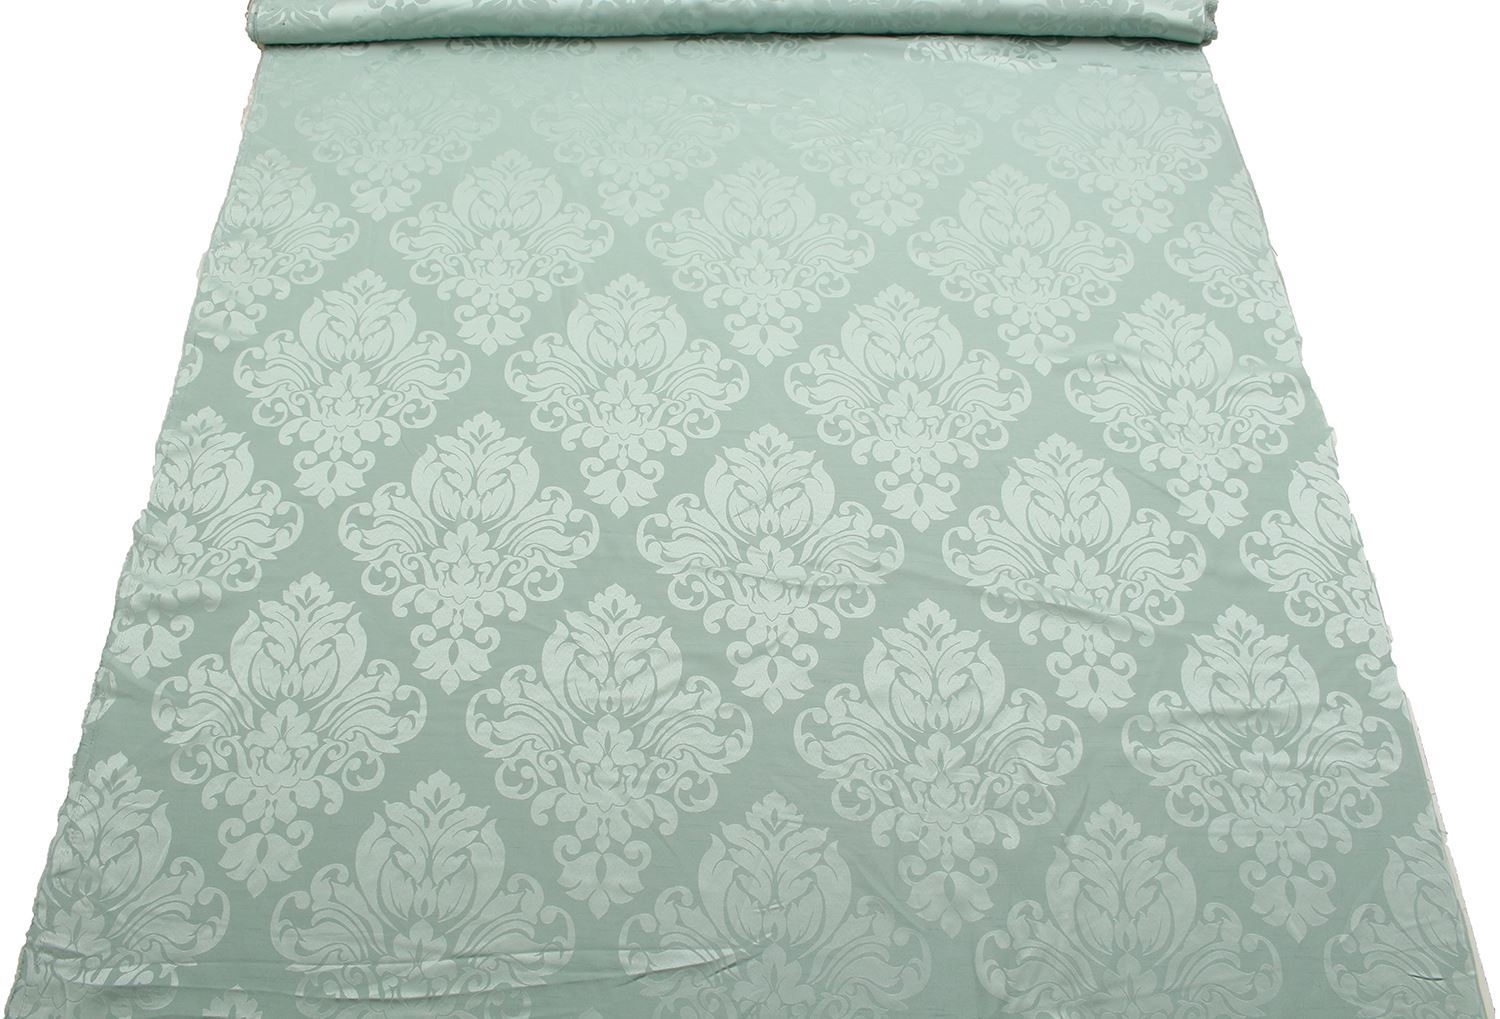 FLORAL-DAMASK-FAUX-SILK-JACQUARD-CURTAIN-UPHOLSTERY-FABRIC-MATERIAL-12-COLOURS thumbnail 13